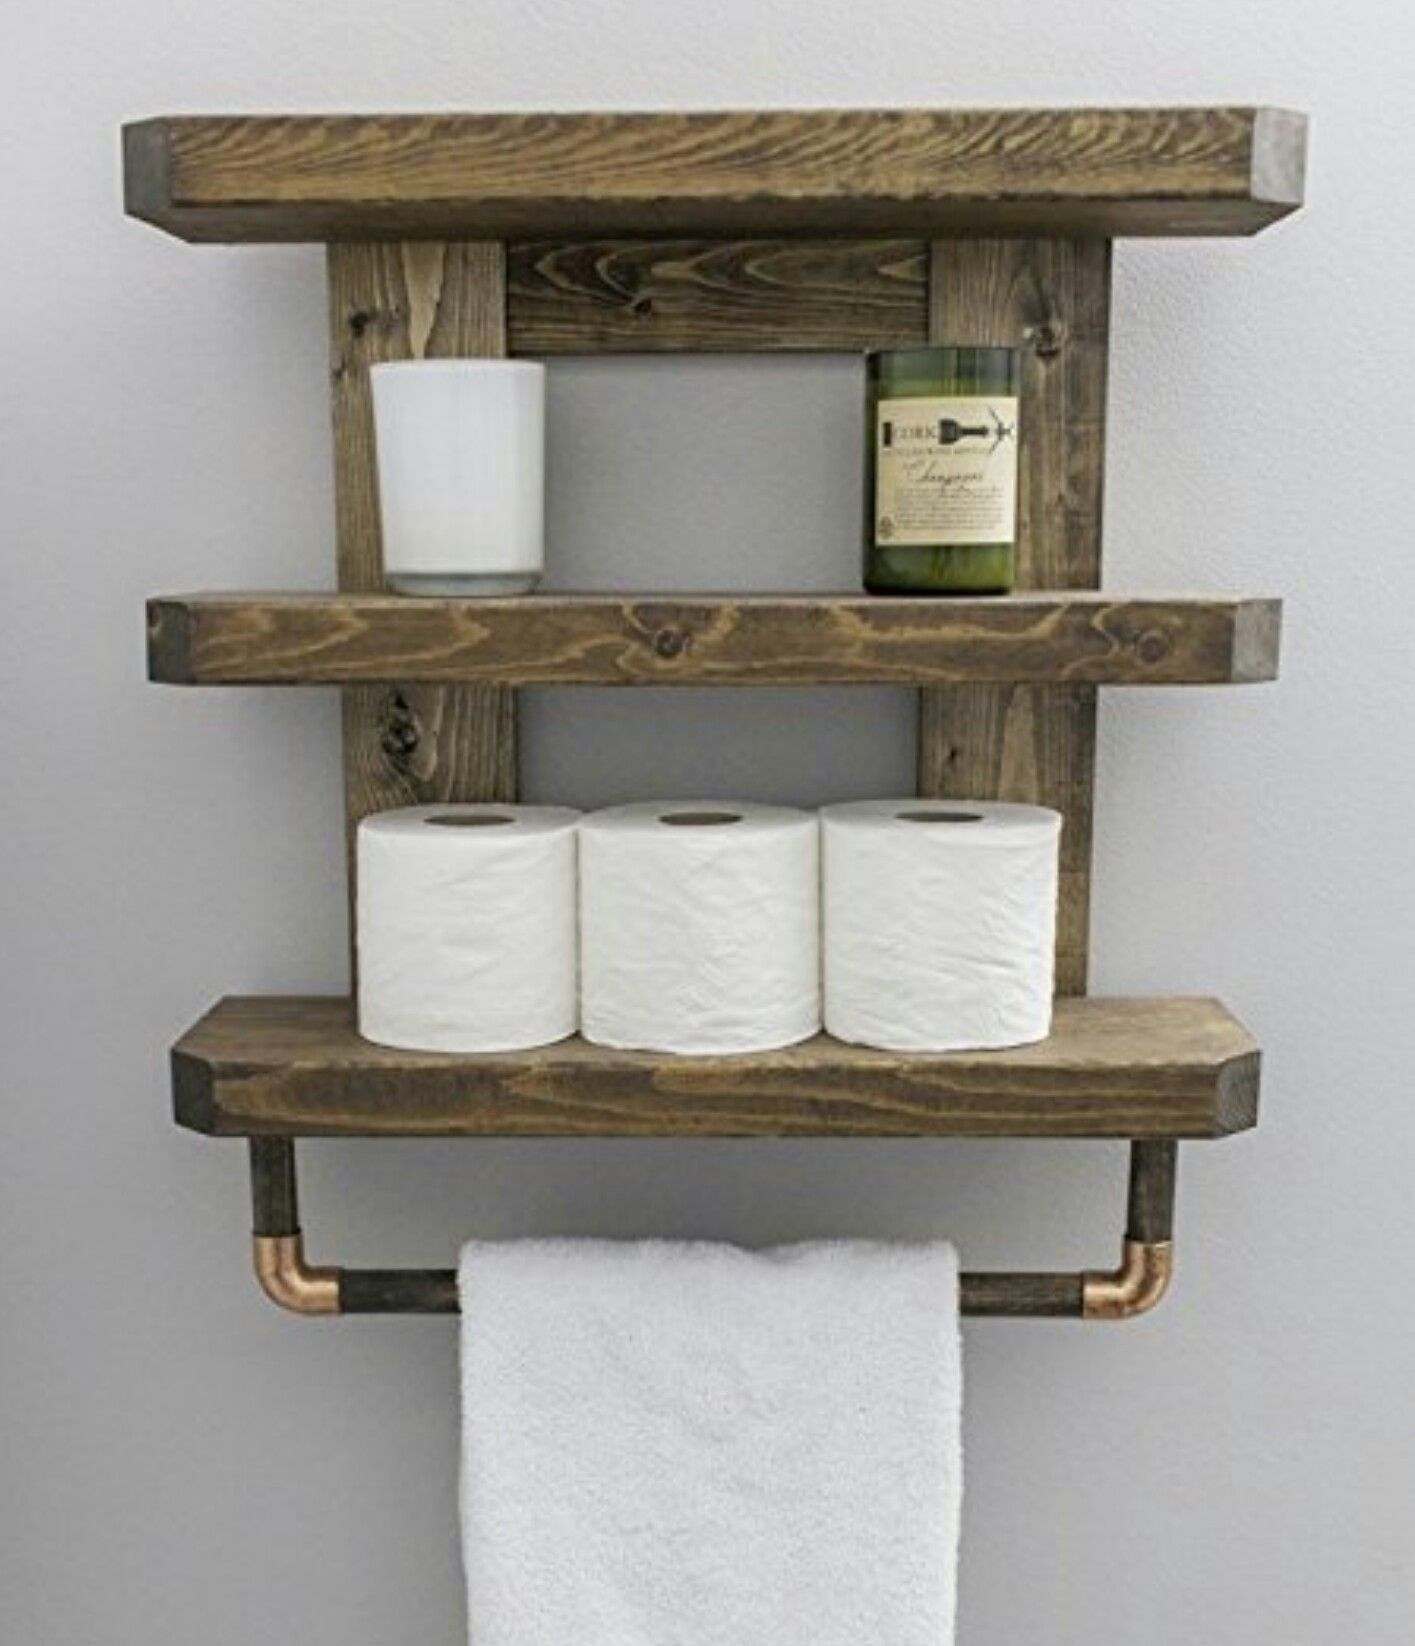 Pin By Bwatters771 On Diy In 2020 Wooden Bathroom Shelves